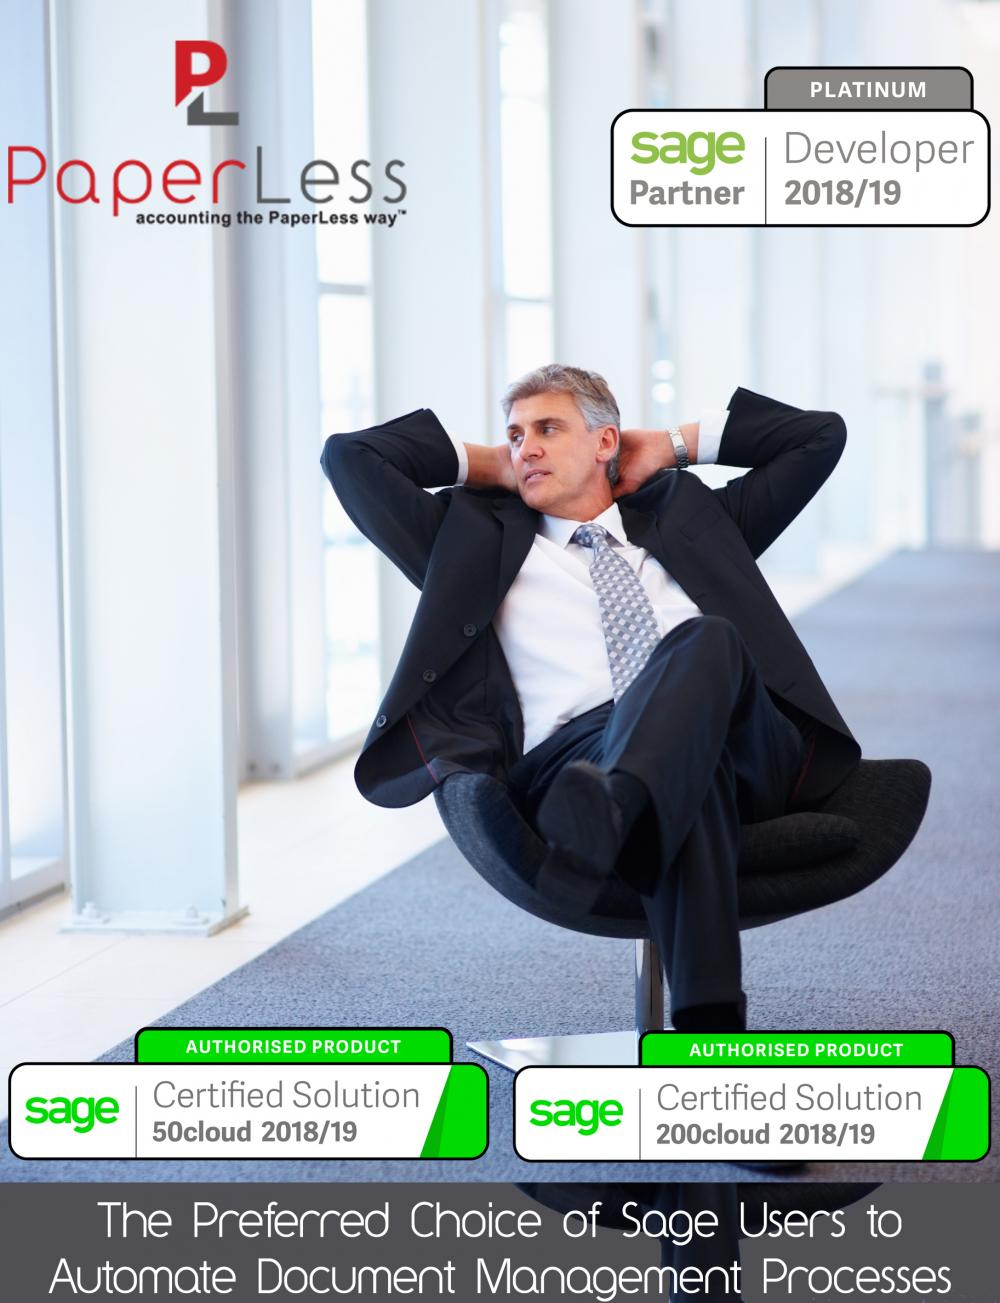 PaperLess Document Management gives Sage users All-In one access to full invoice processing automation for Sage 50cloud, Sage 200cloud, Sage 200 Standard Online and Sage 200 Extra Online.